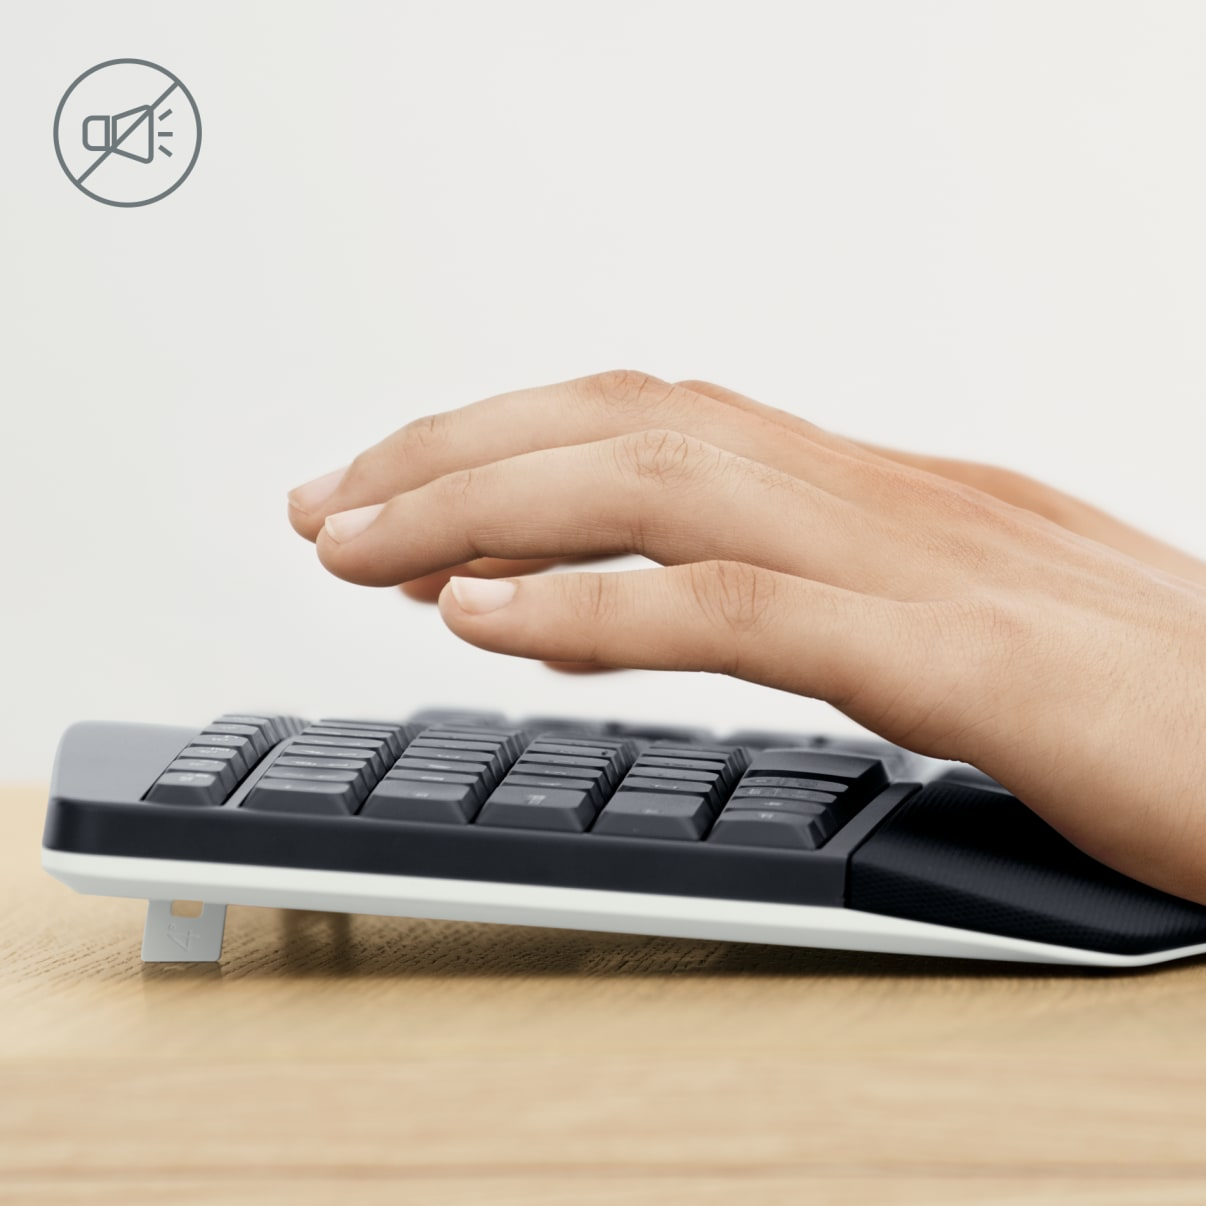 ENHANCED PRODUCTIVITY BY KEYBOARD